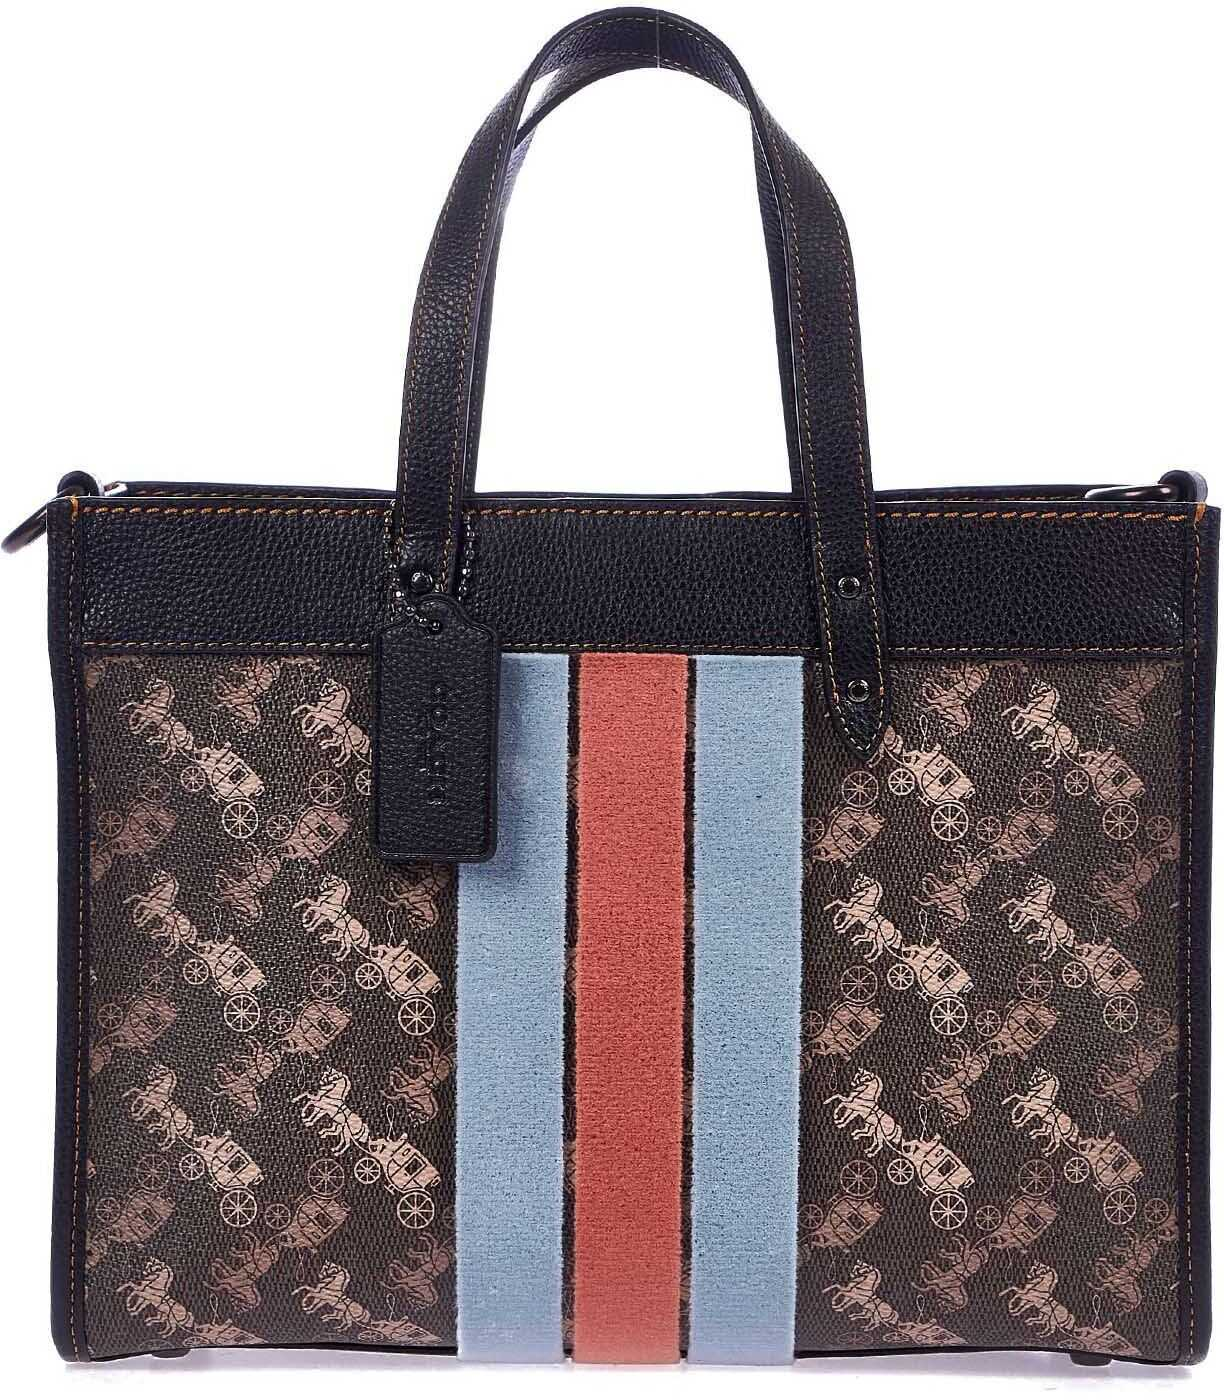 COACH Hand bag with velvet stripes Brown